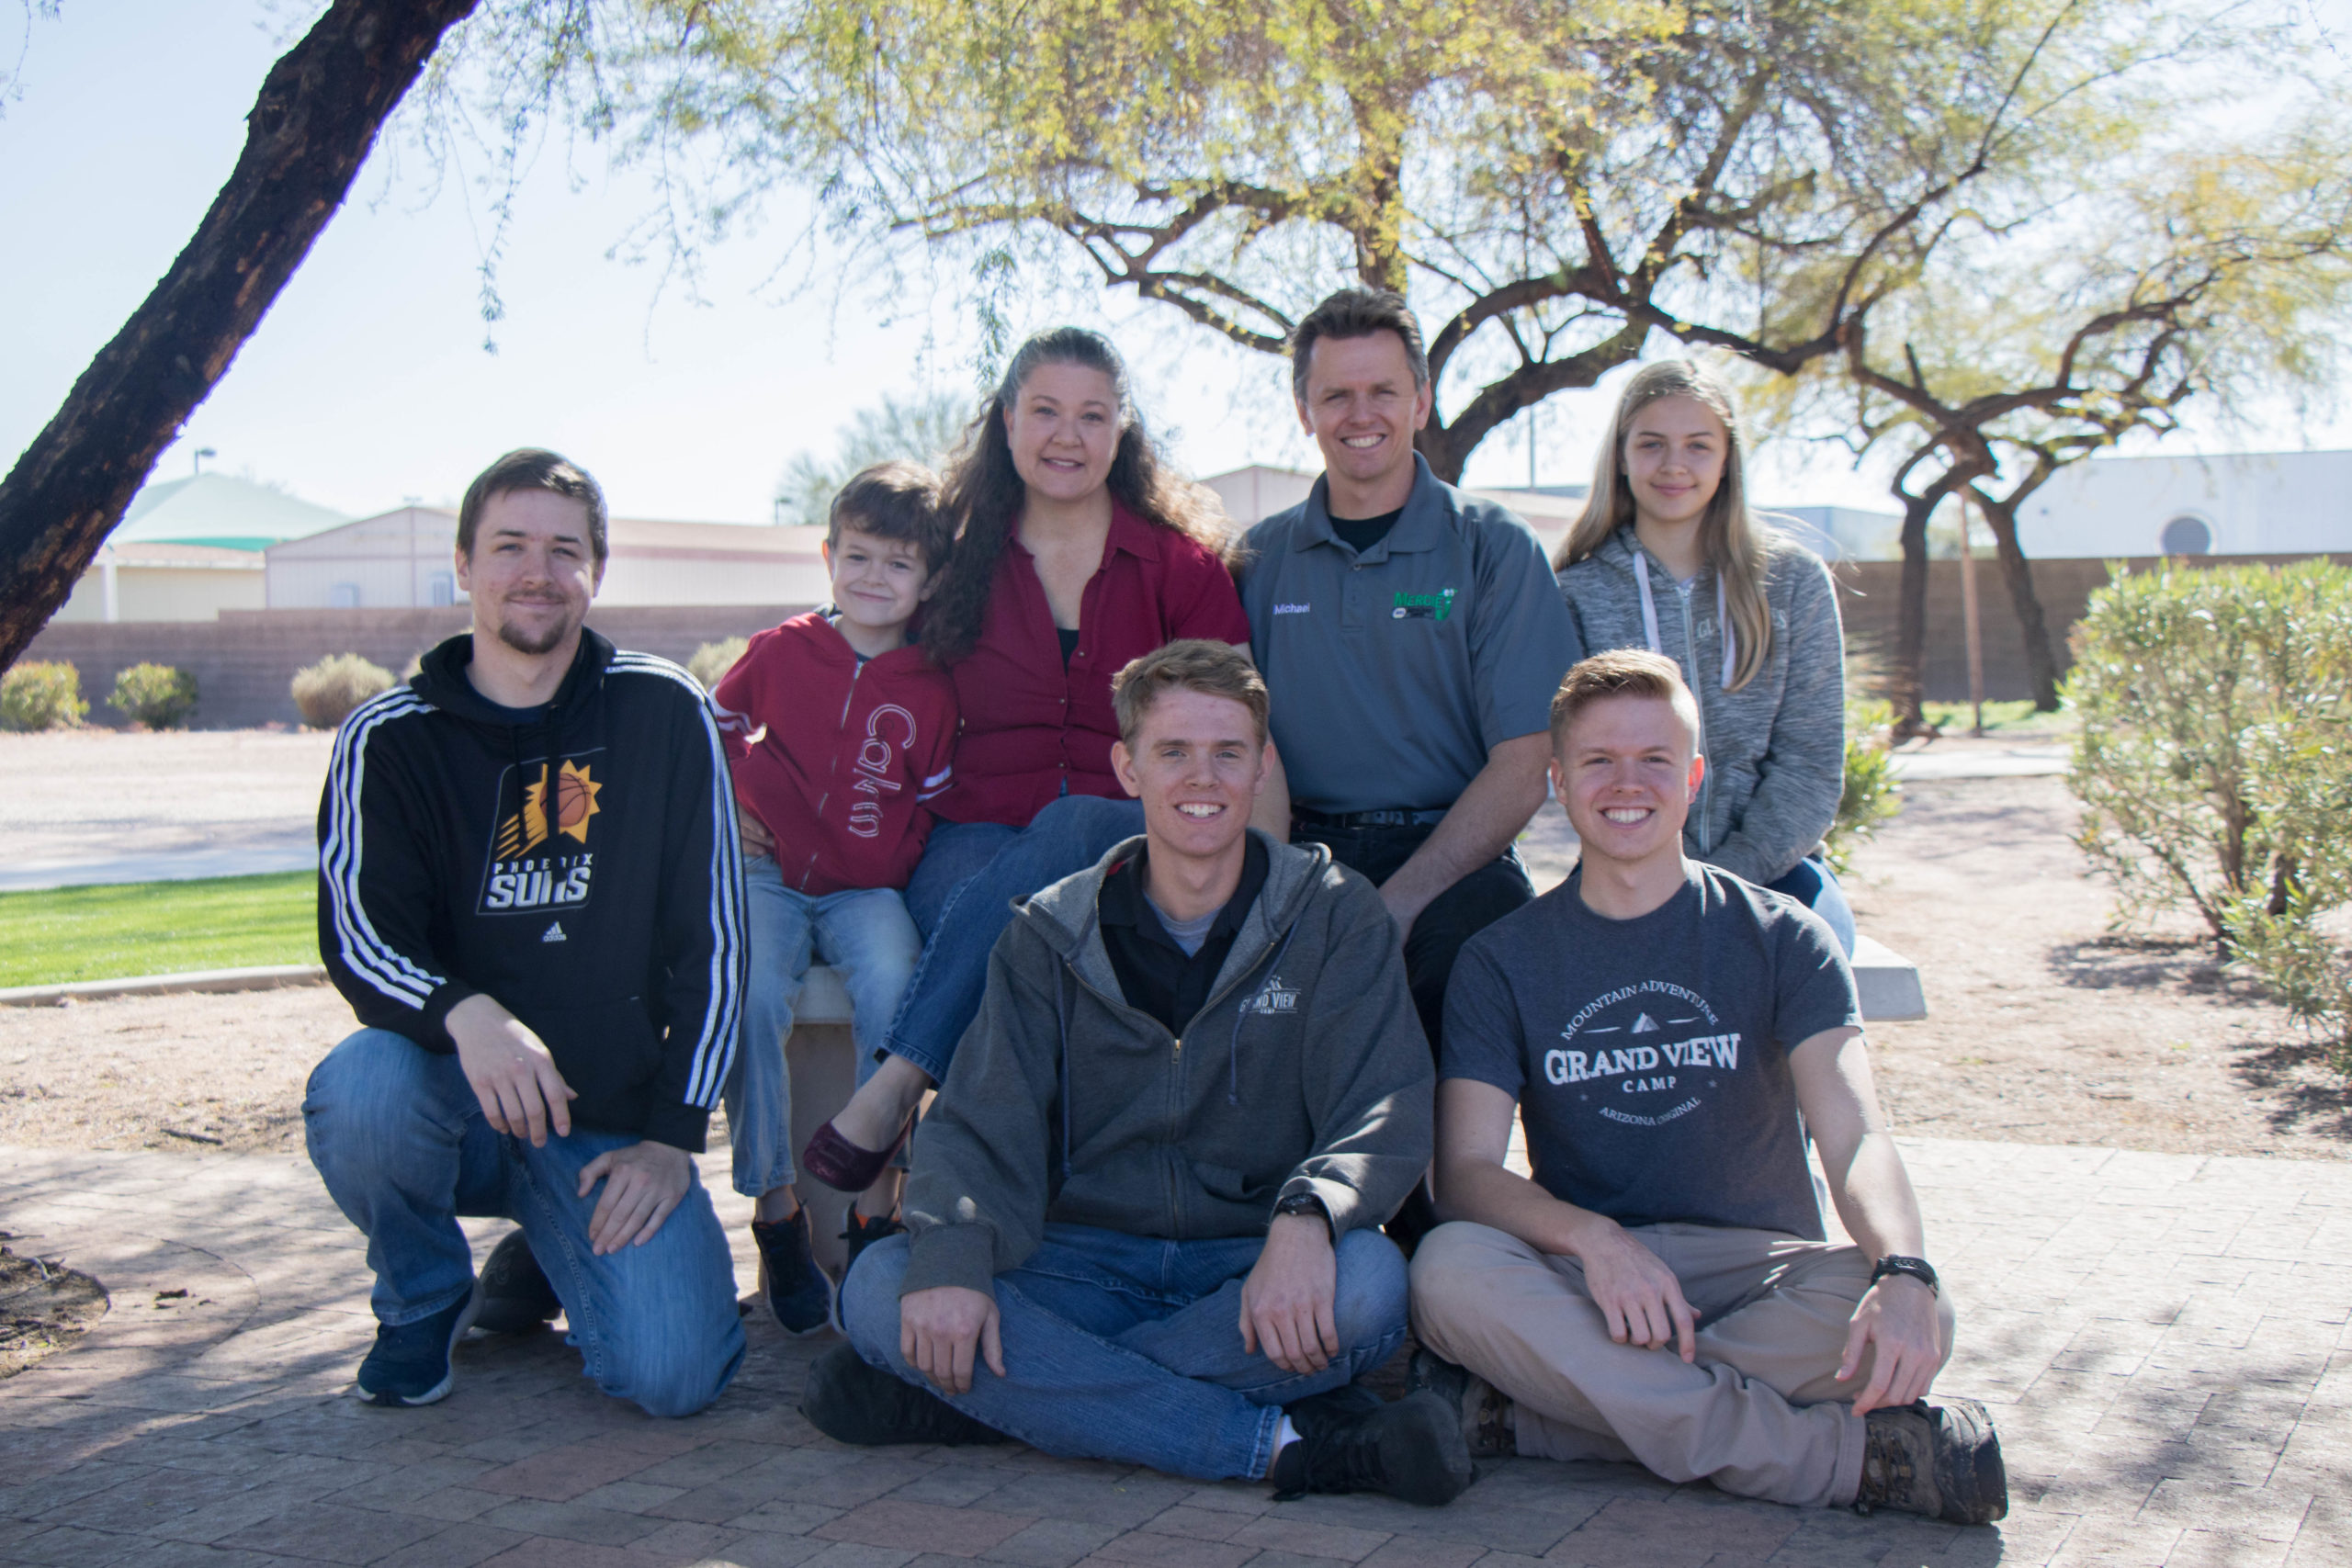 Rebecca And Michael Glandon Of Chandler Say Career And Technical Education At The East Valley Institute Of Technology Has Not Only Changed The Lives Of Their Children, But Transformed Their Entire Family. Photo Courtesy EVIT